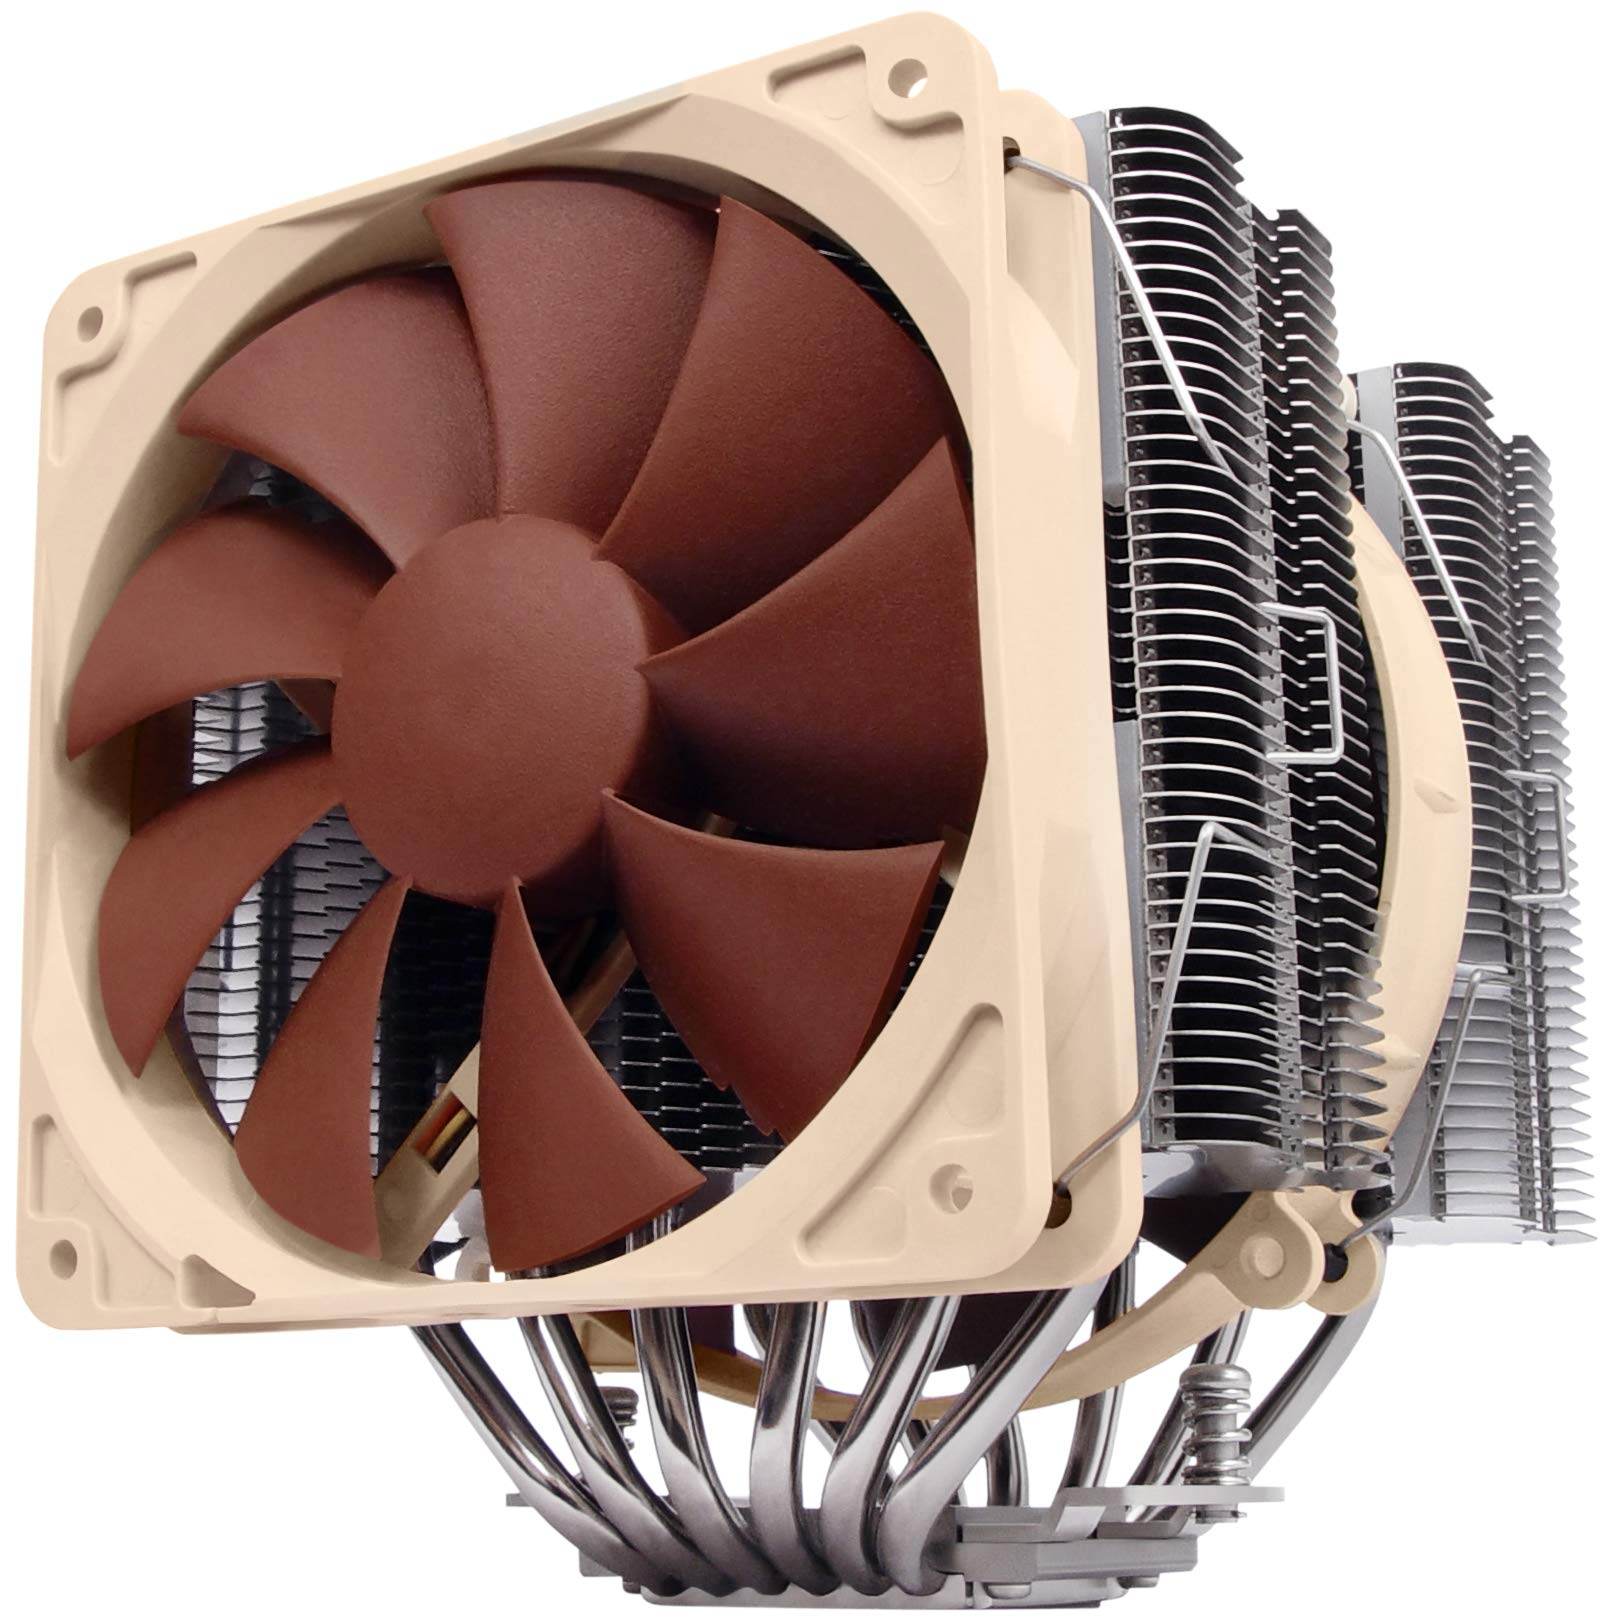 Noctua NH-D14, Premium CPU Cooler with Dual NF-P14 PWM and N